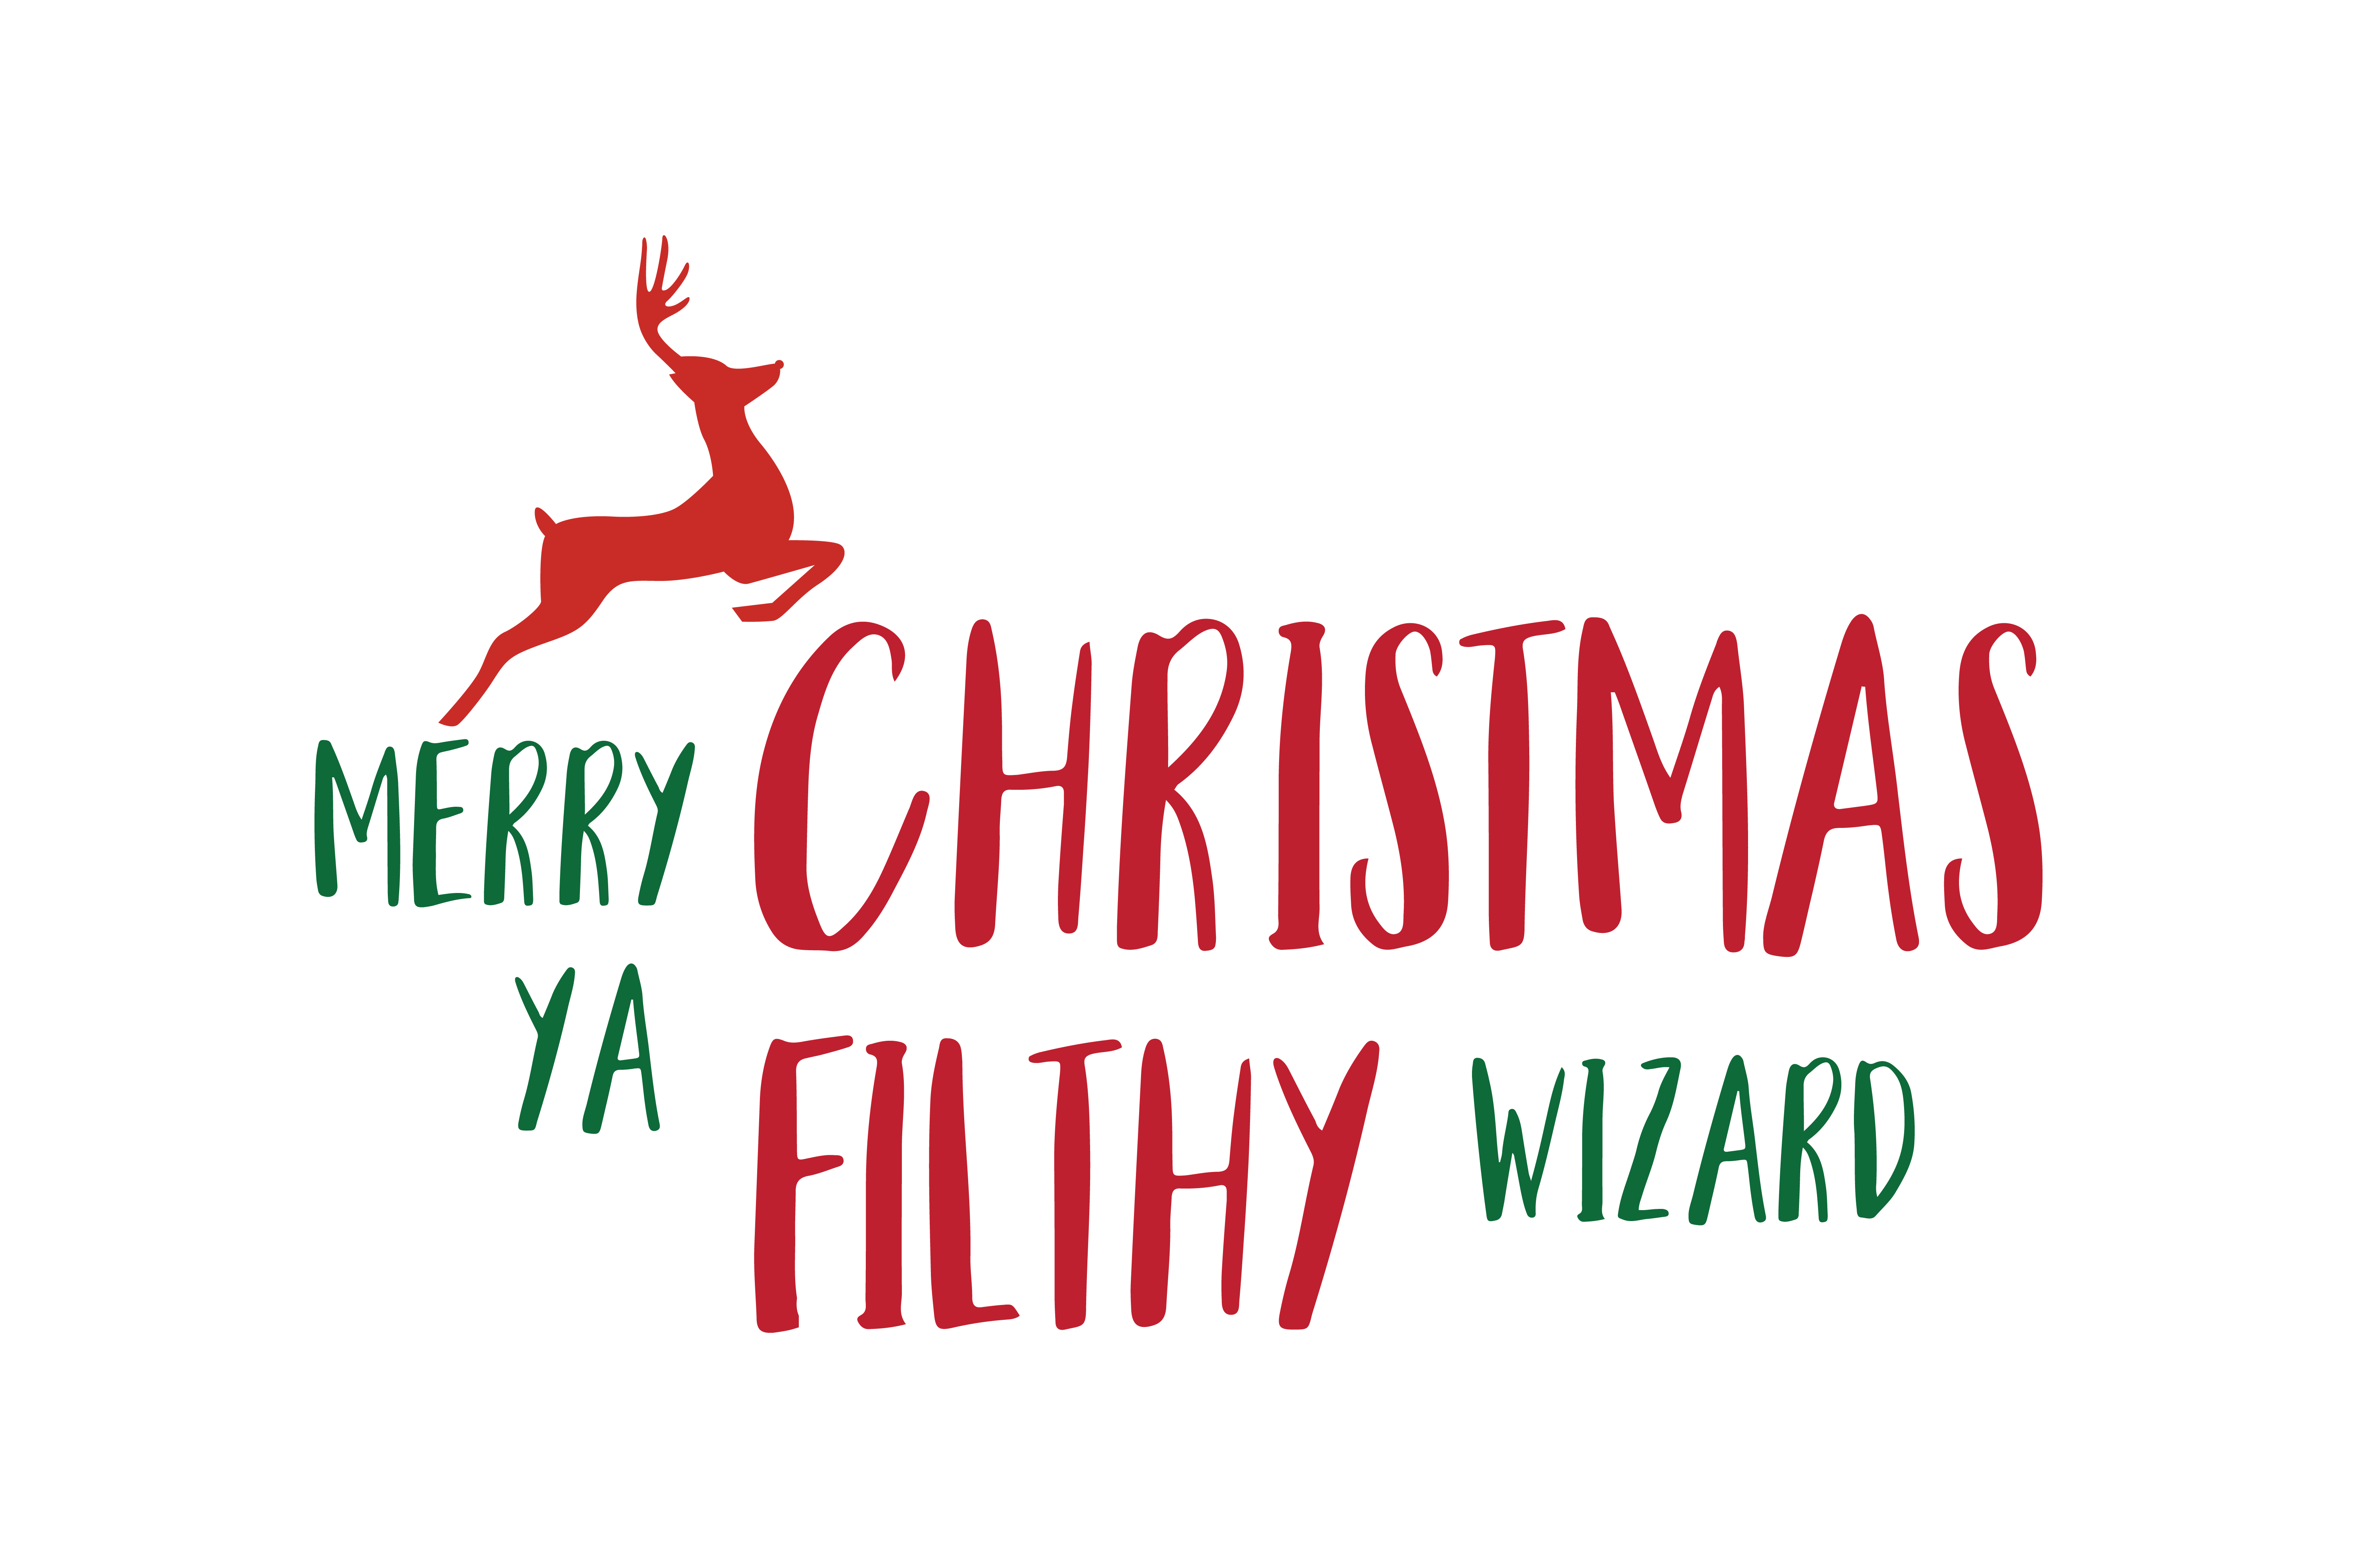 Download Free Merry Christmas Ya Filthy Wizard Svg Cut Graphic By Thelucky for Cricut Explore, Silhouette and other cutting machines.